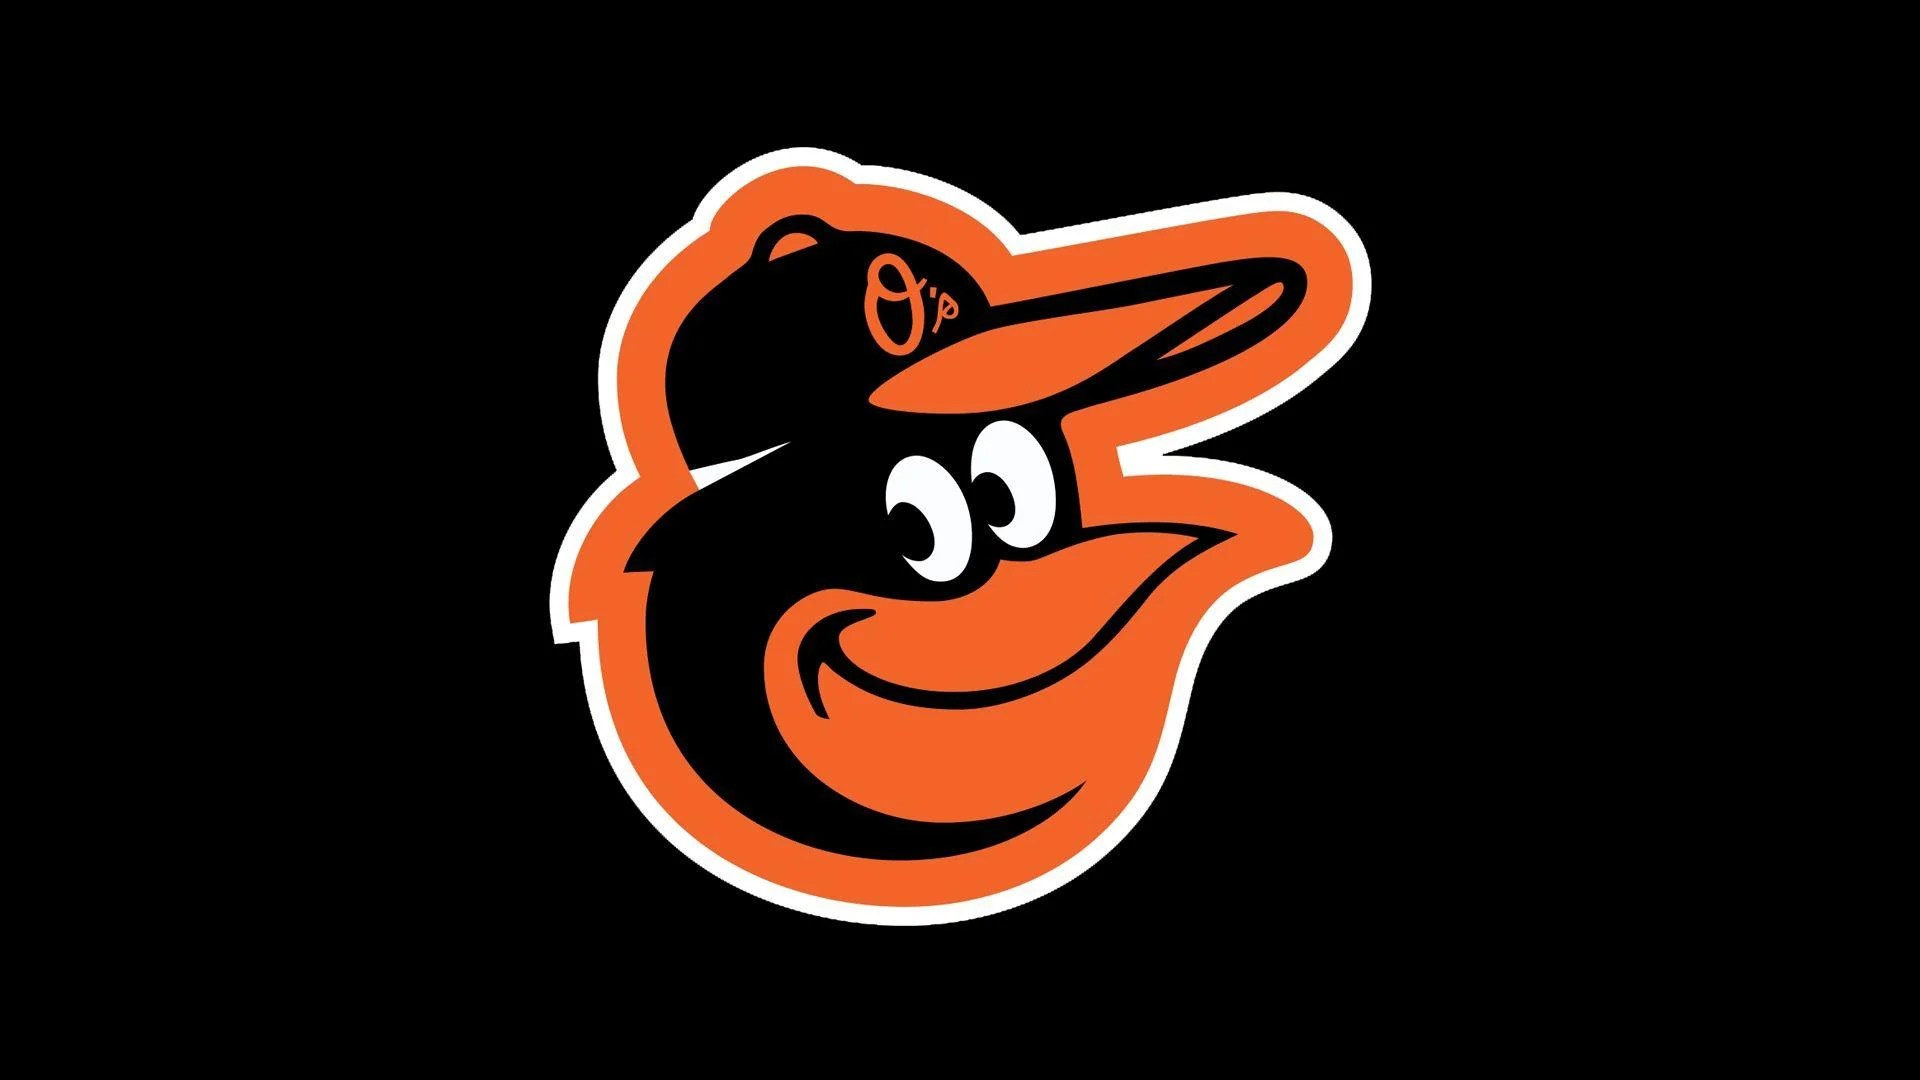 Baltimore Orioles Wallpapers Top Free Baltimore Orioles Backgrounds Wallpaperaccess